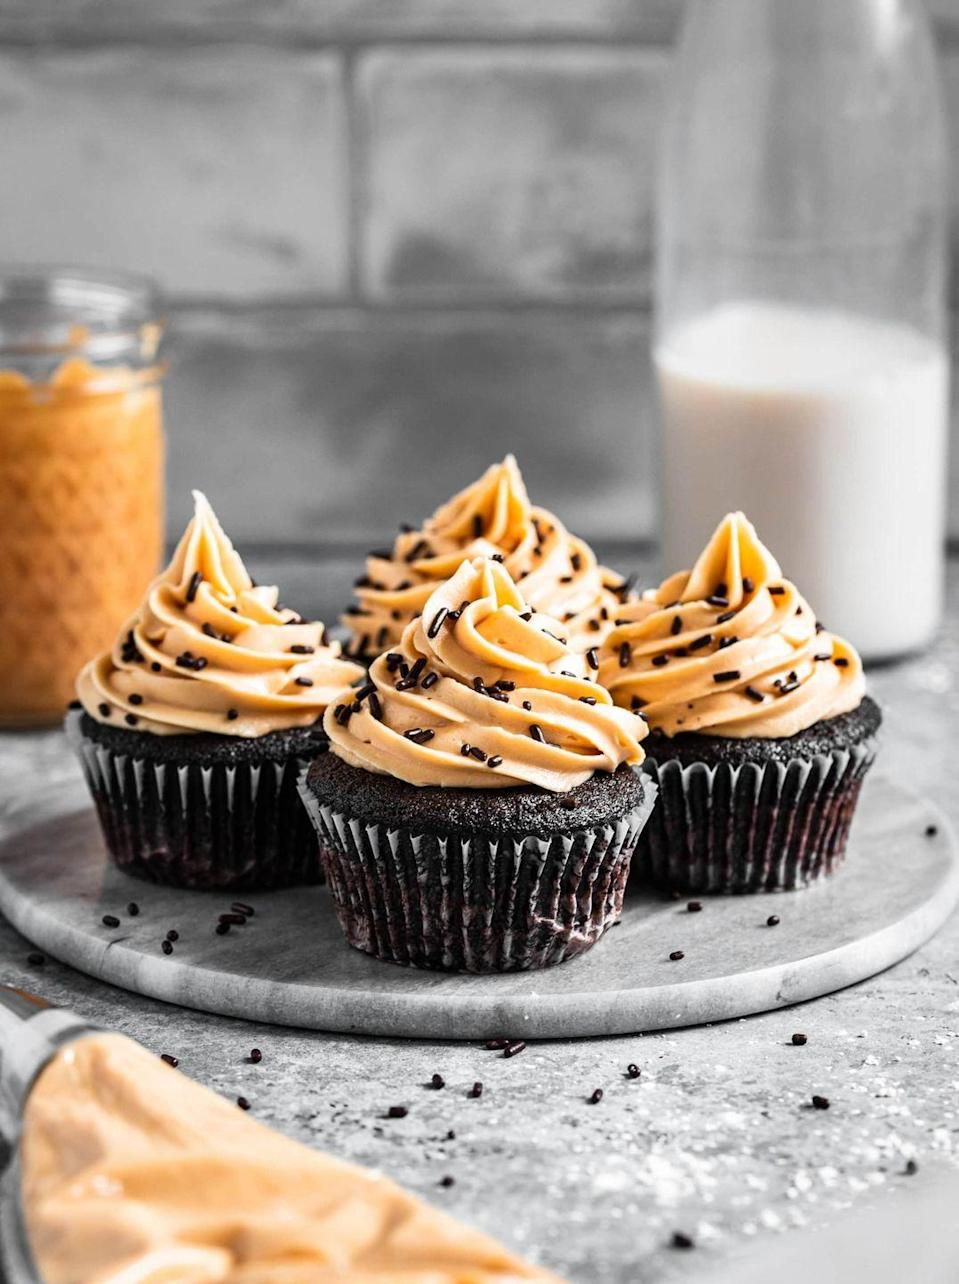 """<p>Chocolate and peanut butter are always a winning combination, no matter what the holiday! Bonus: This recipe is formulated to make a small batch, so you can make a few for yourself, or double or triple it for a crowd!<strong><br><br>Get the recipe at <a href=""""https://mikebakesnyc.com/small-batch-chocolate-cupcakes/"""" rel=""""nofollow noopener"""" target=""""_blank"""" data-ylk=""""slk:Mike Bakes NYC"""" class=""""link rapid-noclick-resp"""">Mike Bakes NYC</a>.</strong><br><br><a class=""""link rapid-noclick-resp"""" href=""""https://go.redirectingat.com?id=74968X1596630&url=https%3A%2F%2Fwww.walmart.com%2Fsearch%2F%3Fquery%3DHAND%2BMIXER&sref=https%3A%2F%2Fwww.thepioneerwoman.com%2Ffood-cooking%2Frecipes%2Fg36343624%2F4th-of-july-cupcakes%2F"""" rel=""""nofollow noopener"""" target=""""_blank"""" data-ylk=""""slk:SHOP HAND MIXERS"""">SHOP HAND MIXERS</a></p>"""